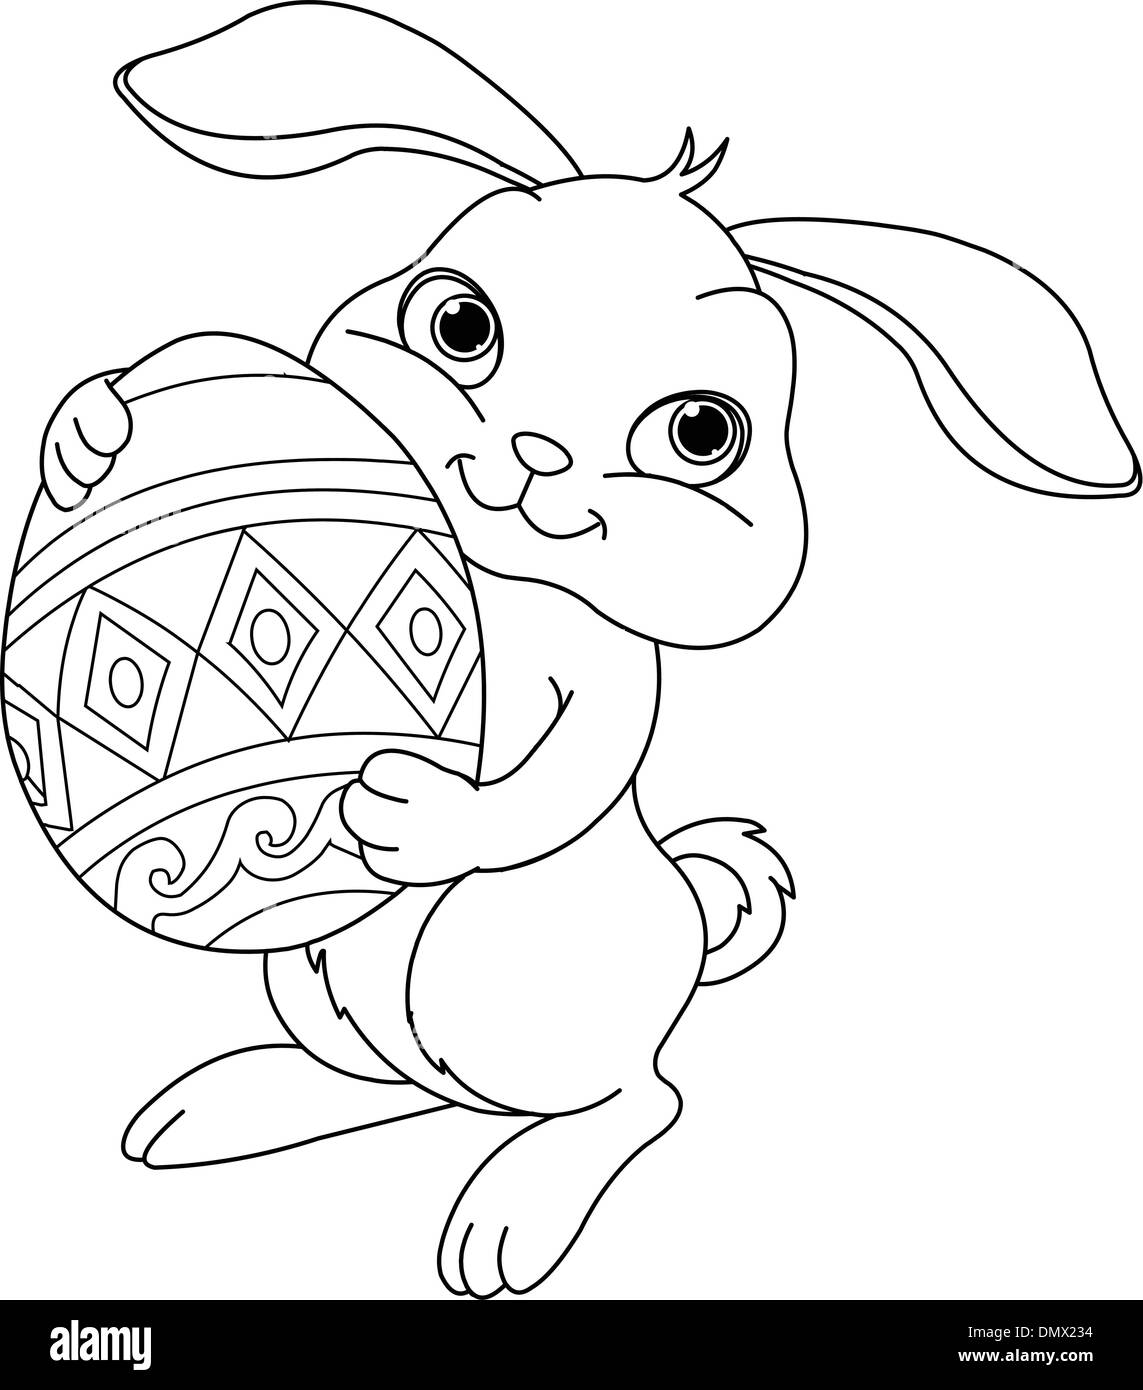 Easter bunny. Coloring page Stock Vector Art & Illustration, Vector ...